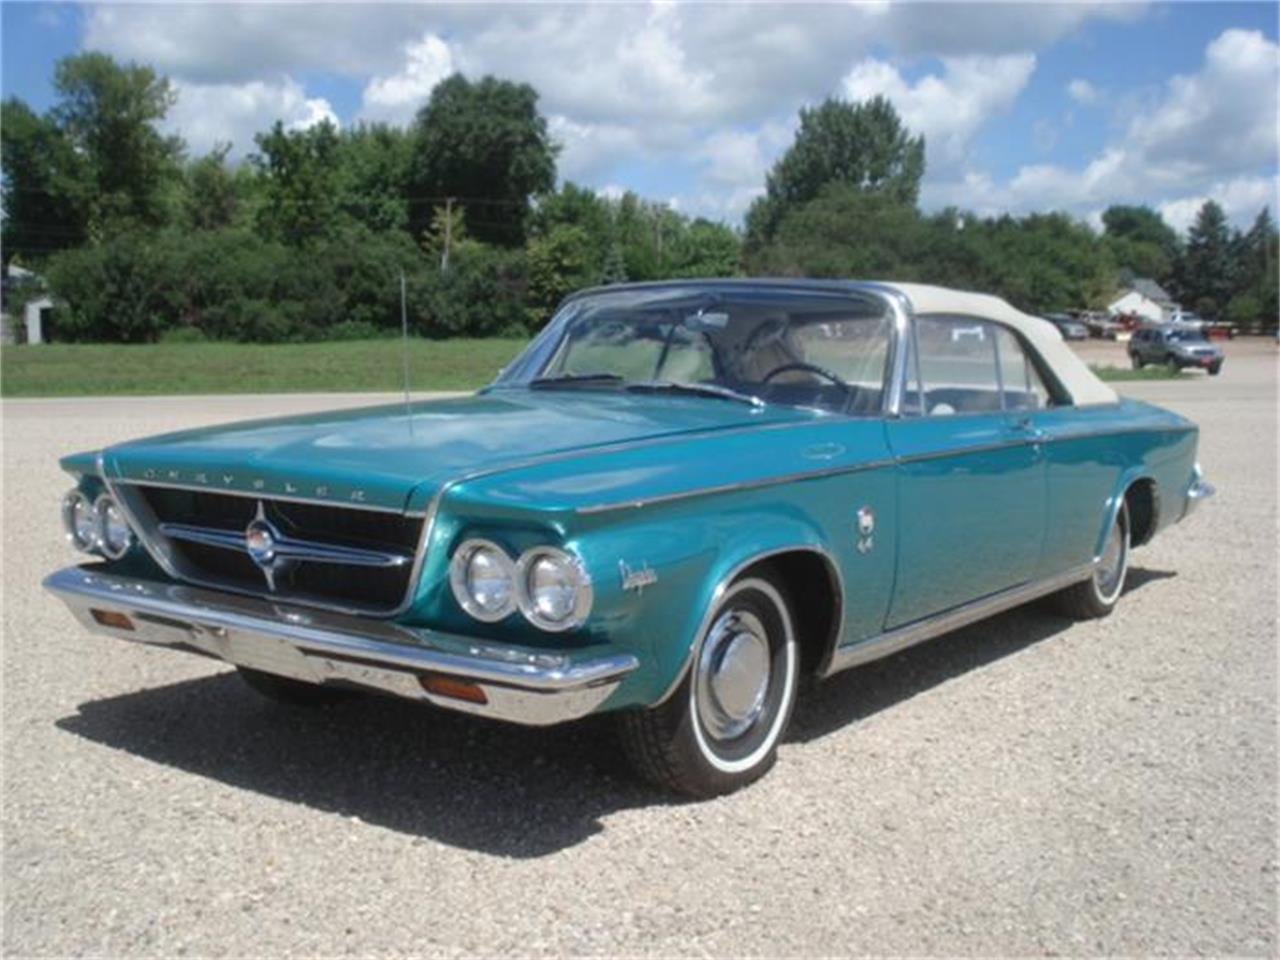 Large Picture of Classic '63 Chrysler 300 located in Milbank South Dakota - $21,985.00 Offered by Gesswein Motors - F34A